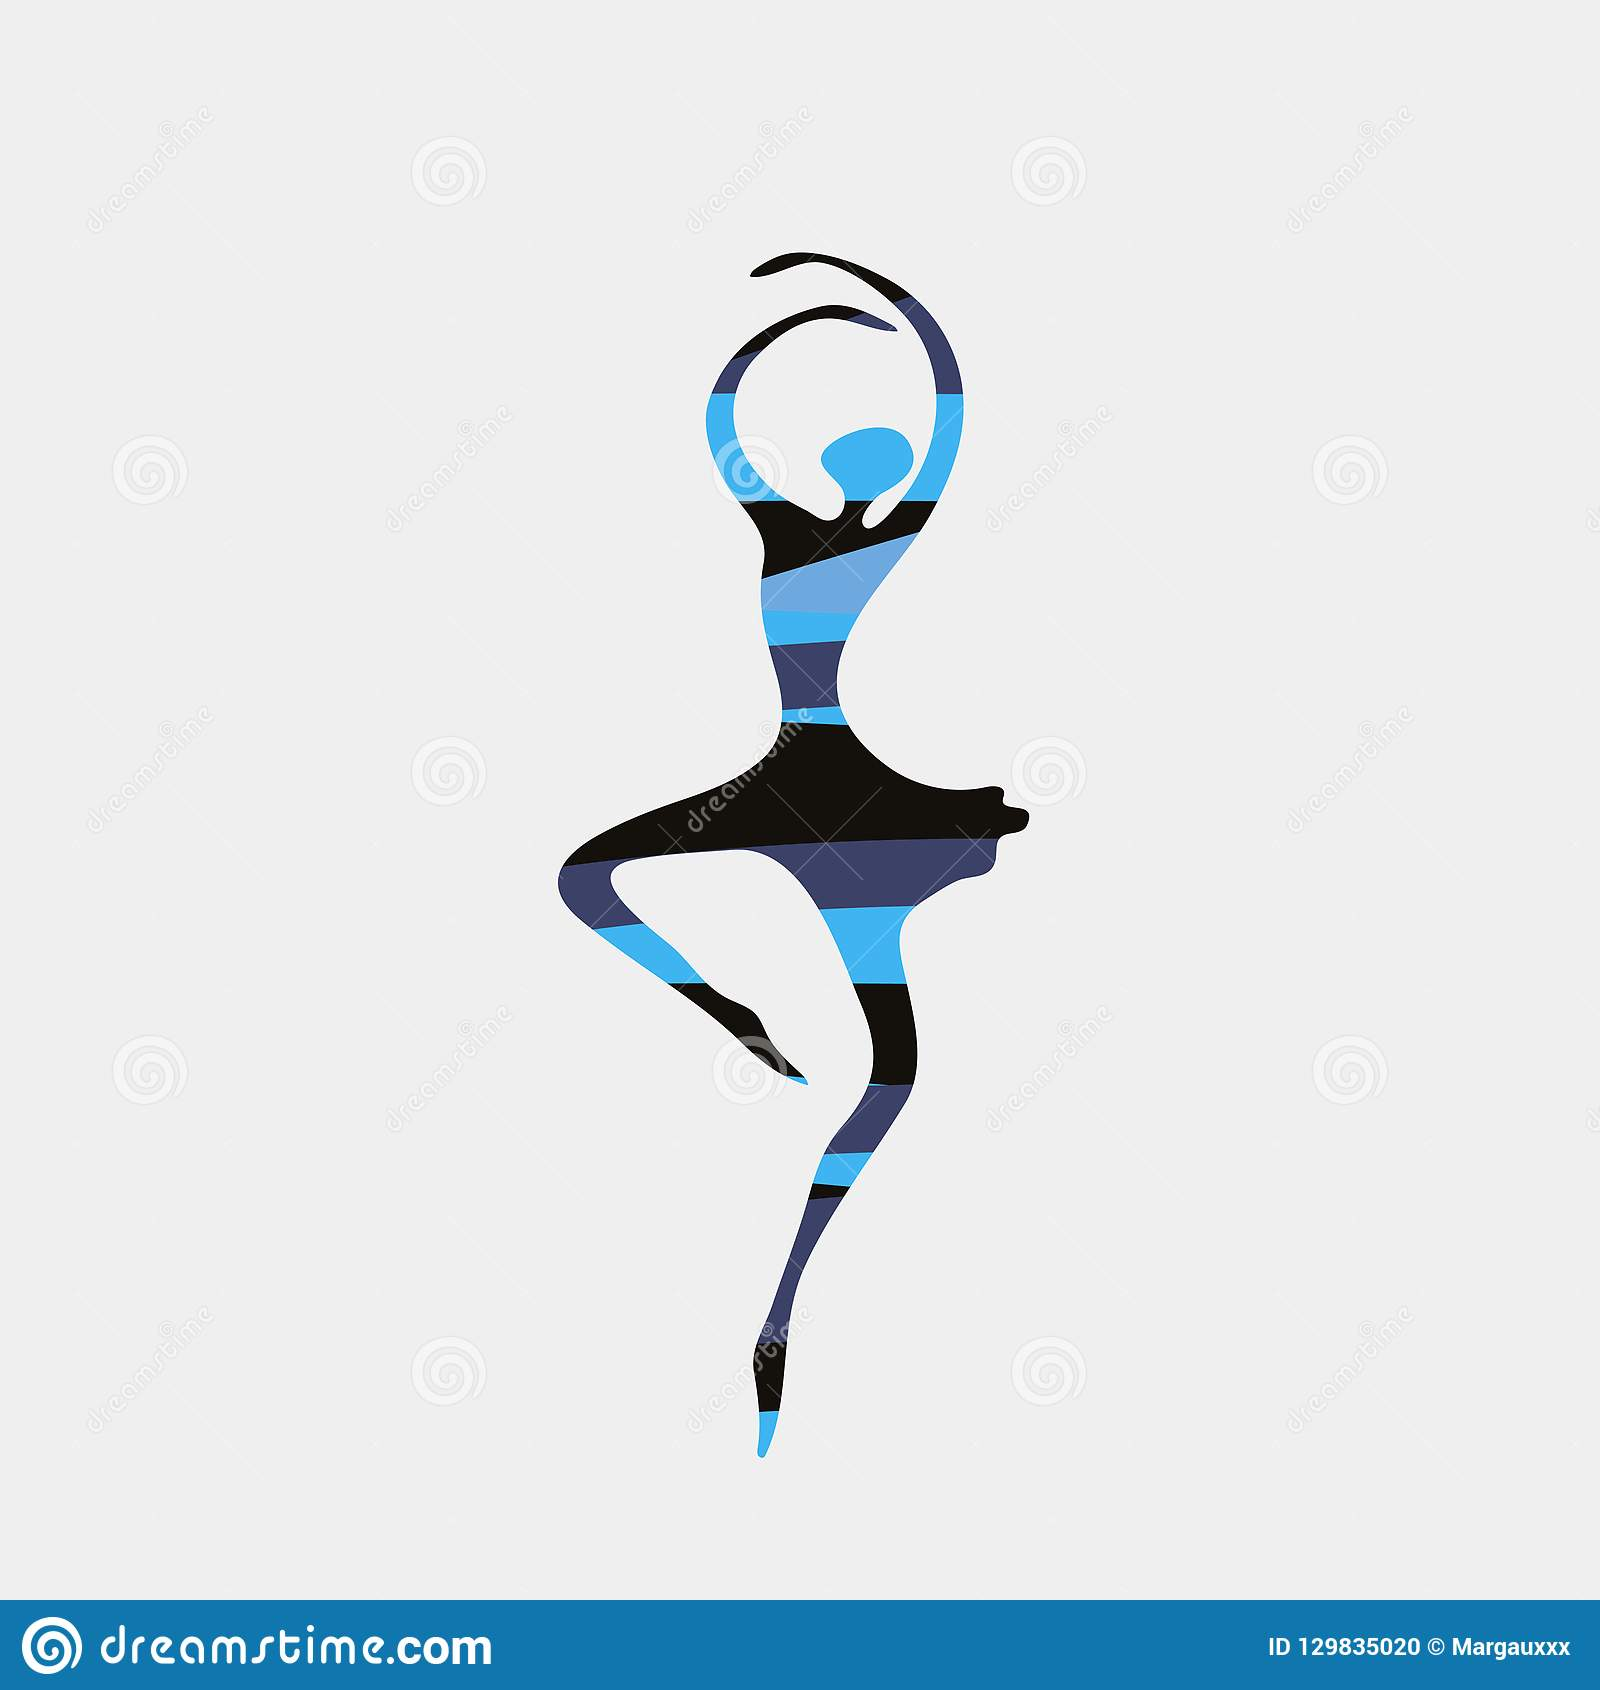 Dancer In Ballet Pose With Abstract Silhouette Pattern Logo Symbol Stock Illustration Illustration Of Pose Geometric 129835020